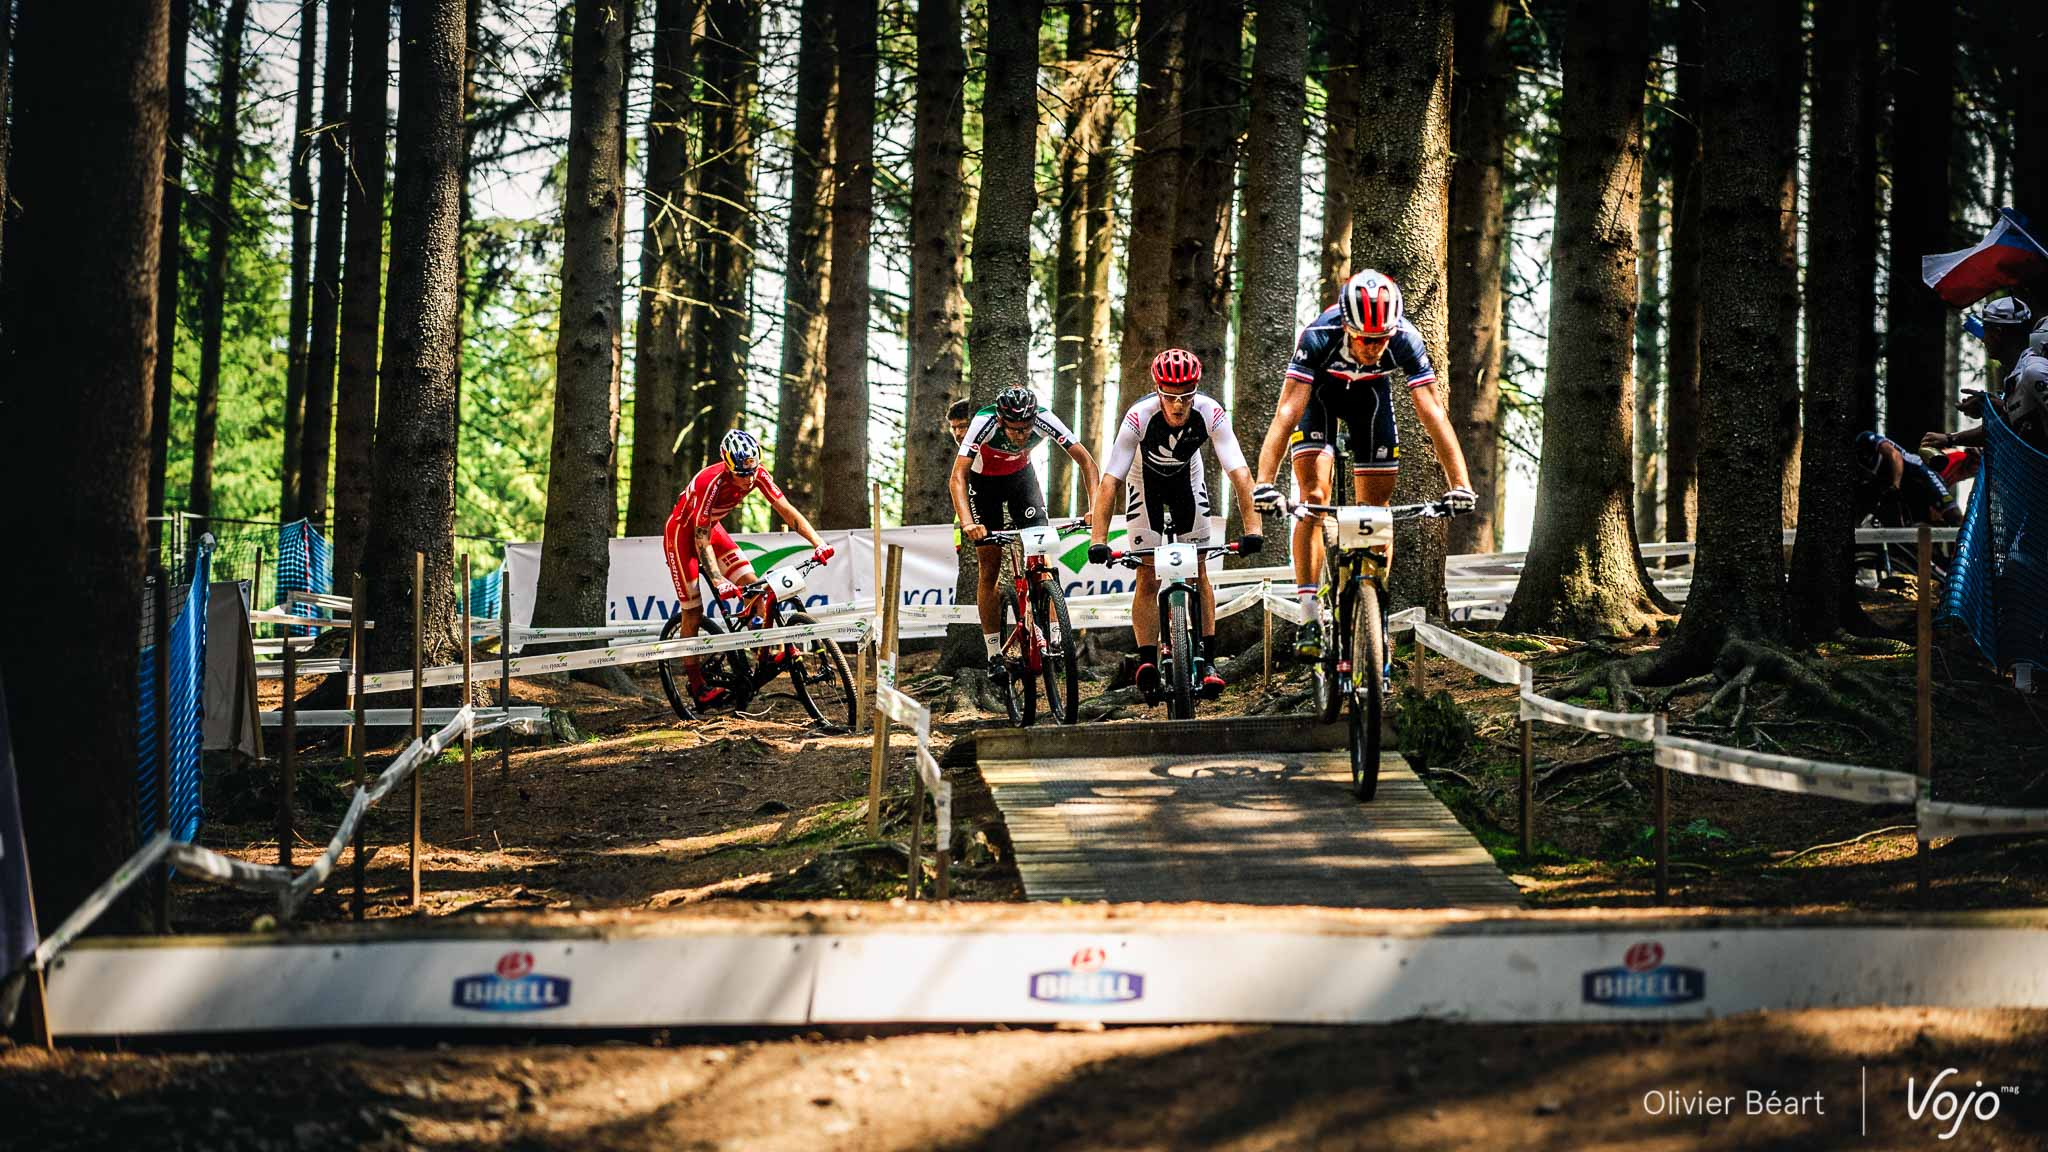 Nove_Mesto_Worlds_2016_U23_Men_Koretzky_Gaze_Copyright_OBeart_VojoMag-16